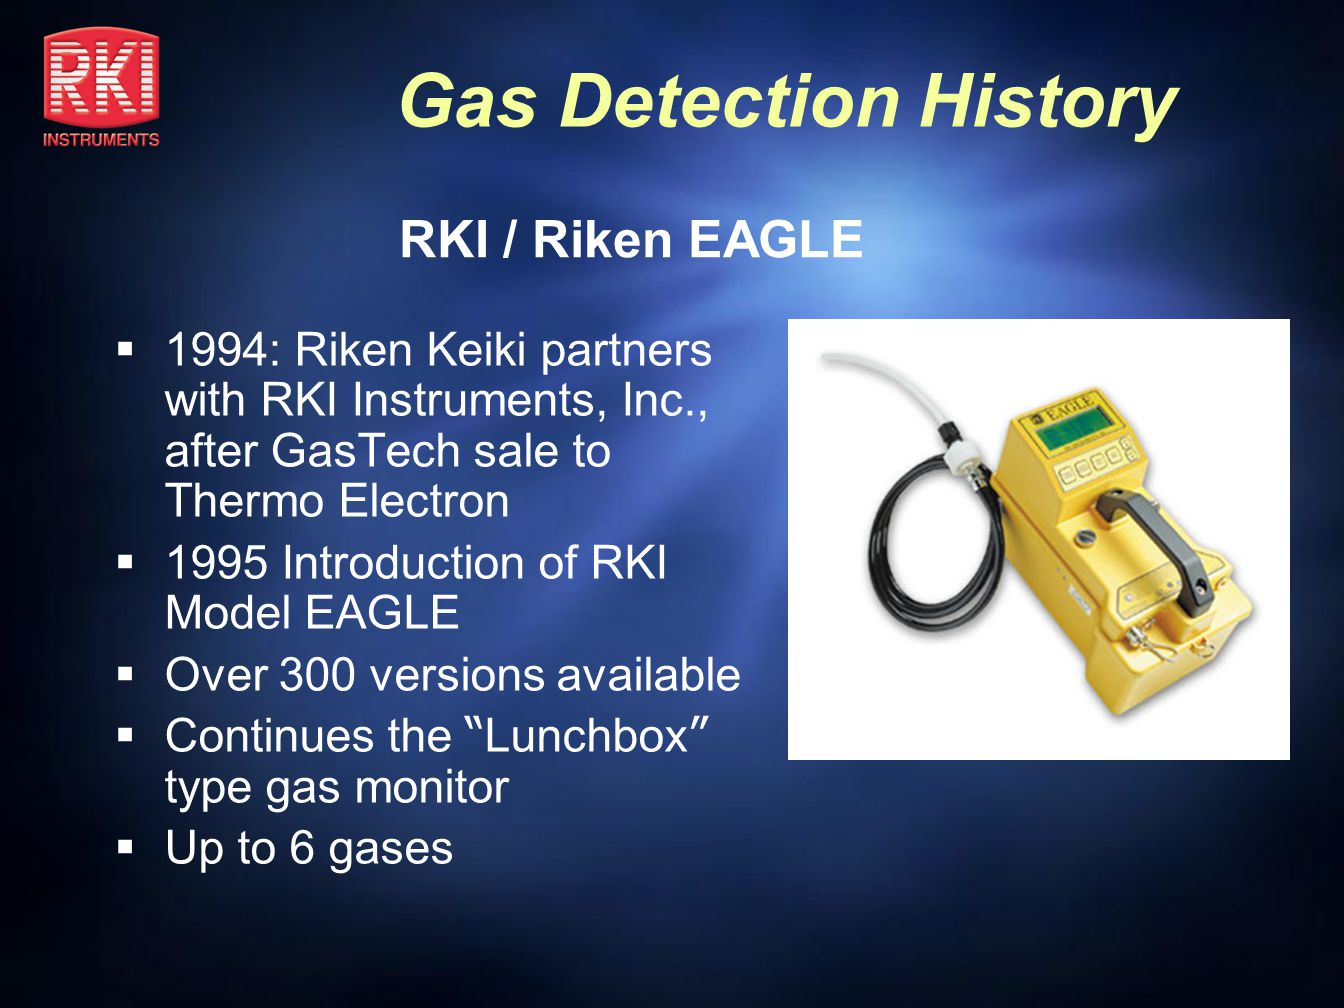 RKI / Riken EAGLE 1994: Riken Keiki partners with RKI Instruments, Inc., after GasTech sale to Thermo Electron.